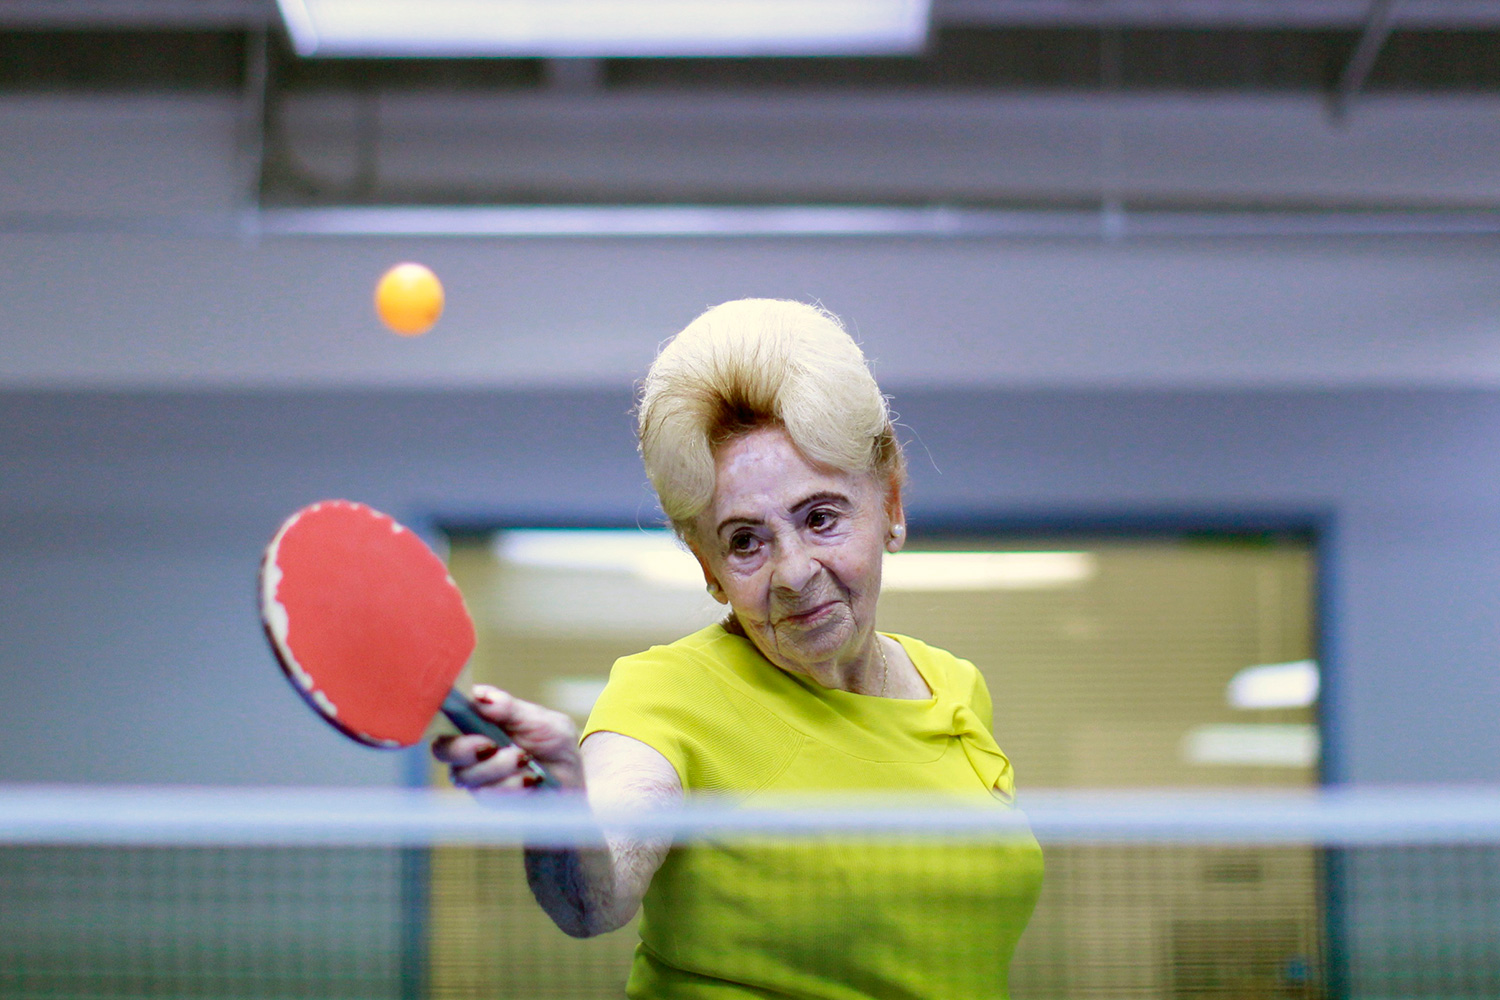 Picture shows Betty, who has an old fashioned 1950s-style hairdo, swinging her paddle at a ball.